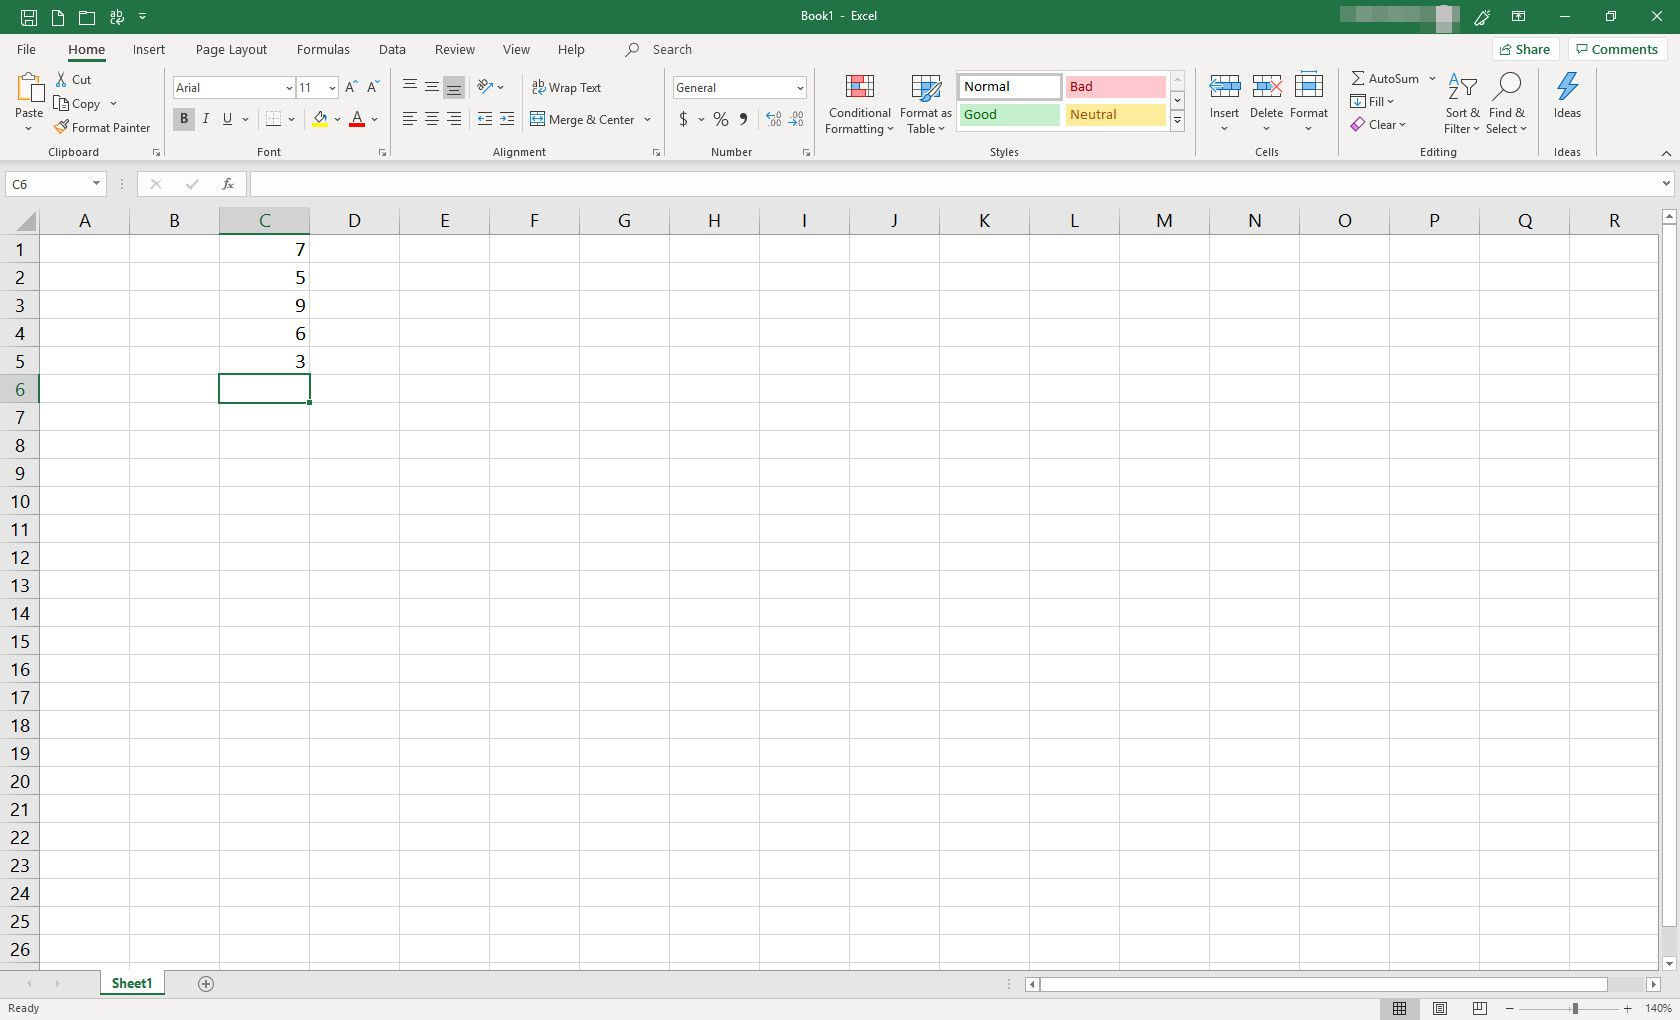 MS Excel spreadsheet with some cells populated with data